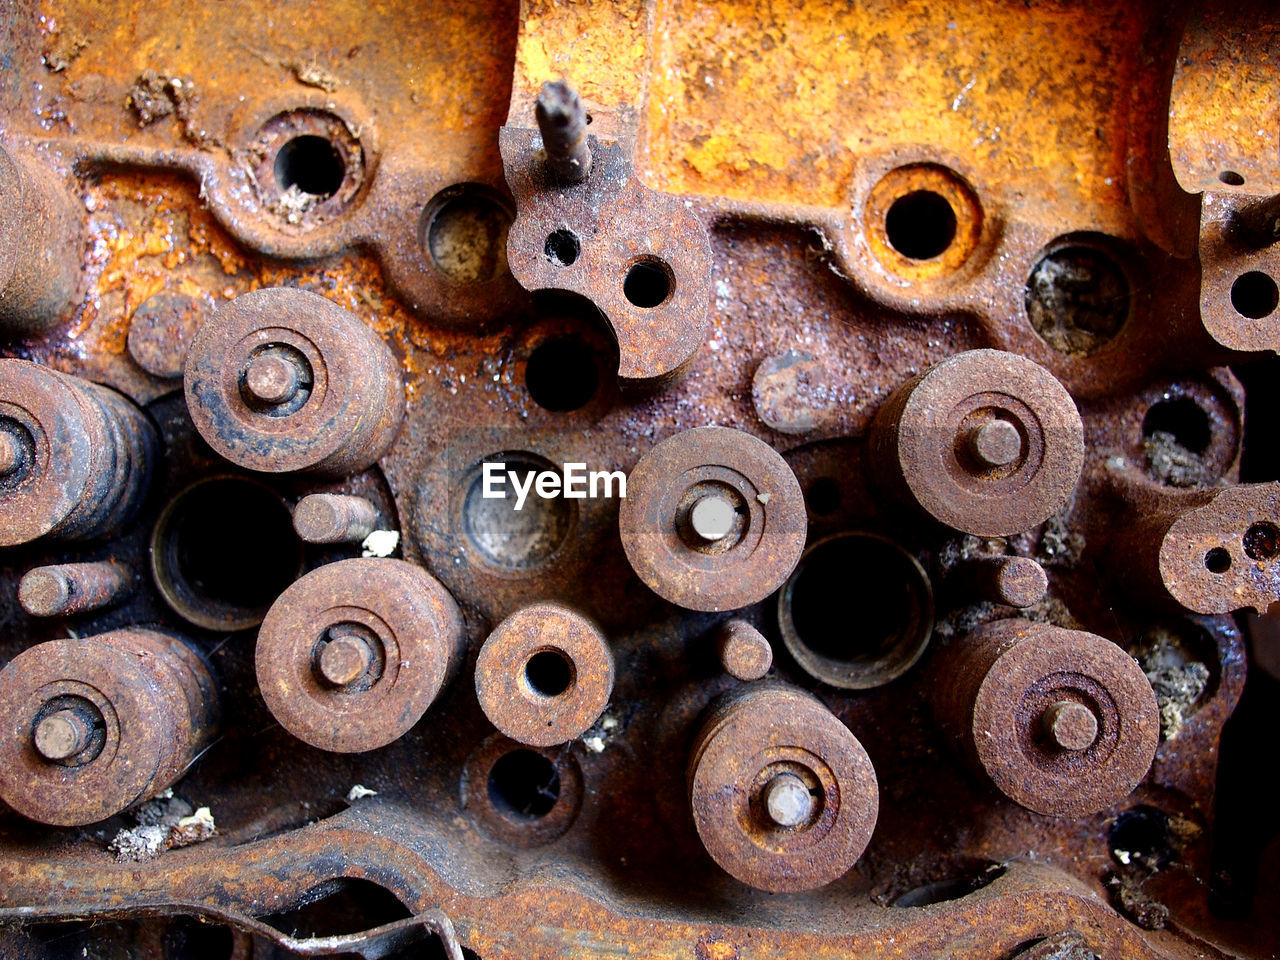 rusty, metal, circle, full frame, backgrounds, geometric shape, no people, decline, obsolete, close-up, machinery, gear, deterioration, machine part, shape, large group of objects, abandoned, equipment, indoors, old, wheel, complexity